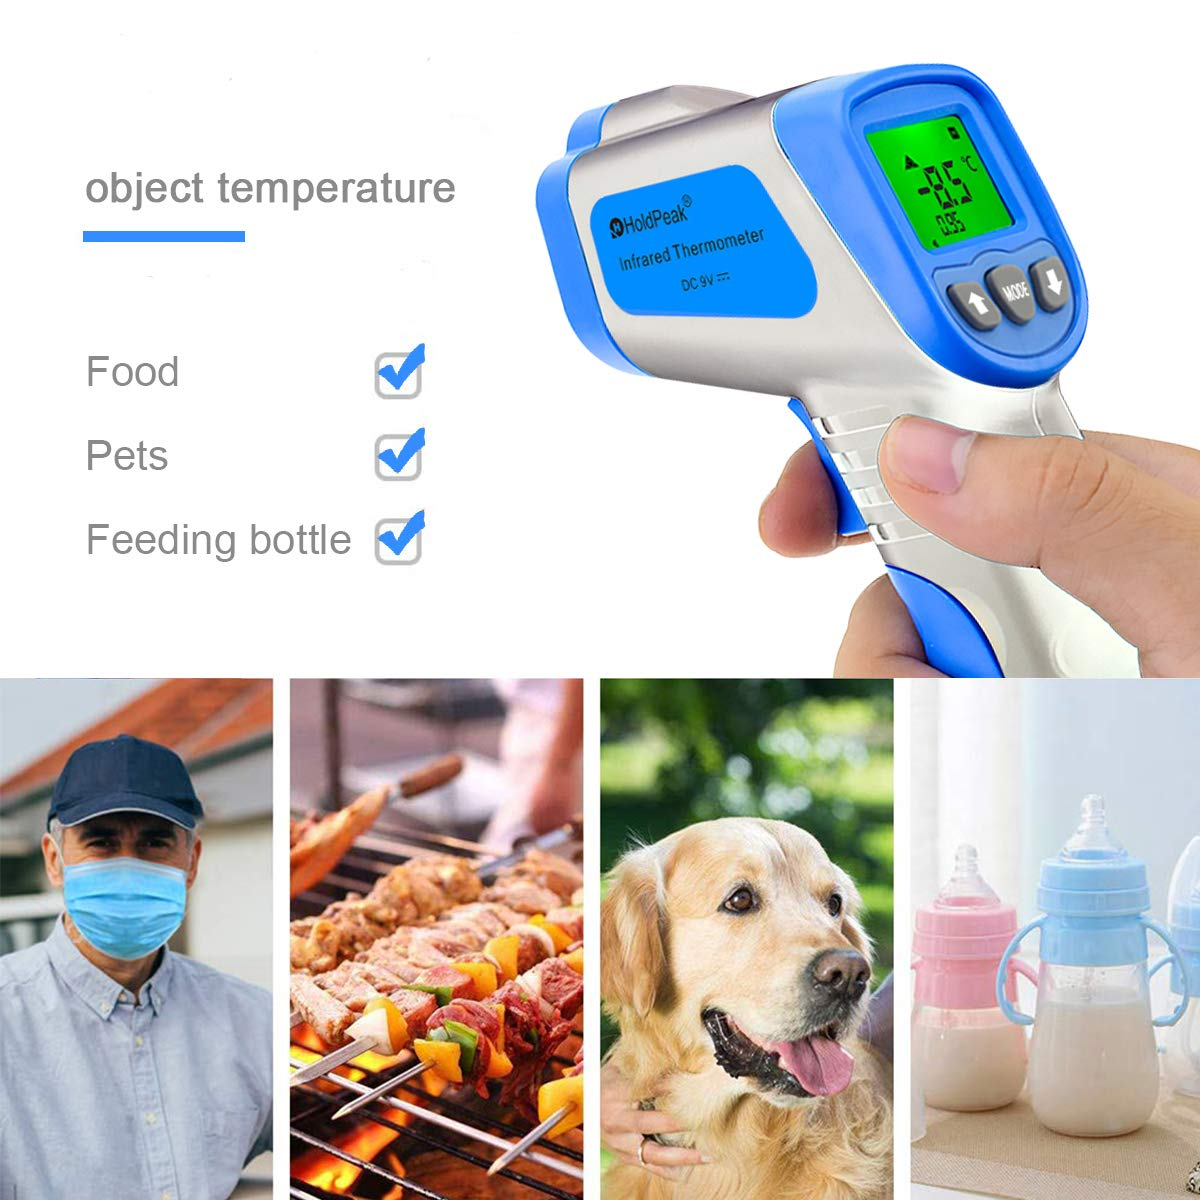 89 to109℉ HOLDPEAK Infrared Thermometer HP-981AS Non-Contact Digital Handheld Temperature Measure Instant-Read 32℃~43℃ 50 ℃~380 ℃ Two Modes Suit for family and Industrial Use -58~716 ℉ Battery Included